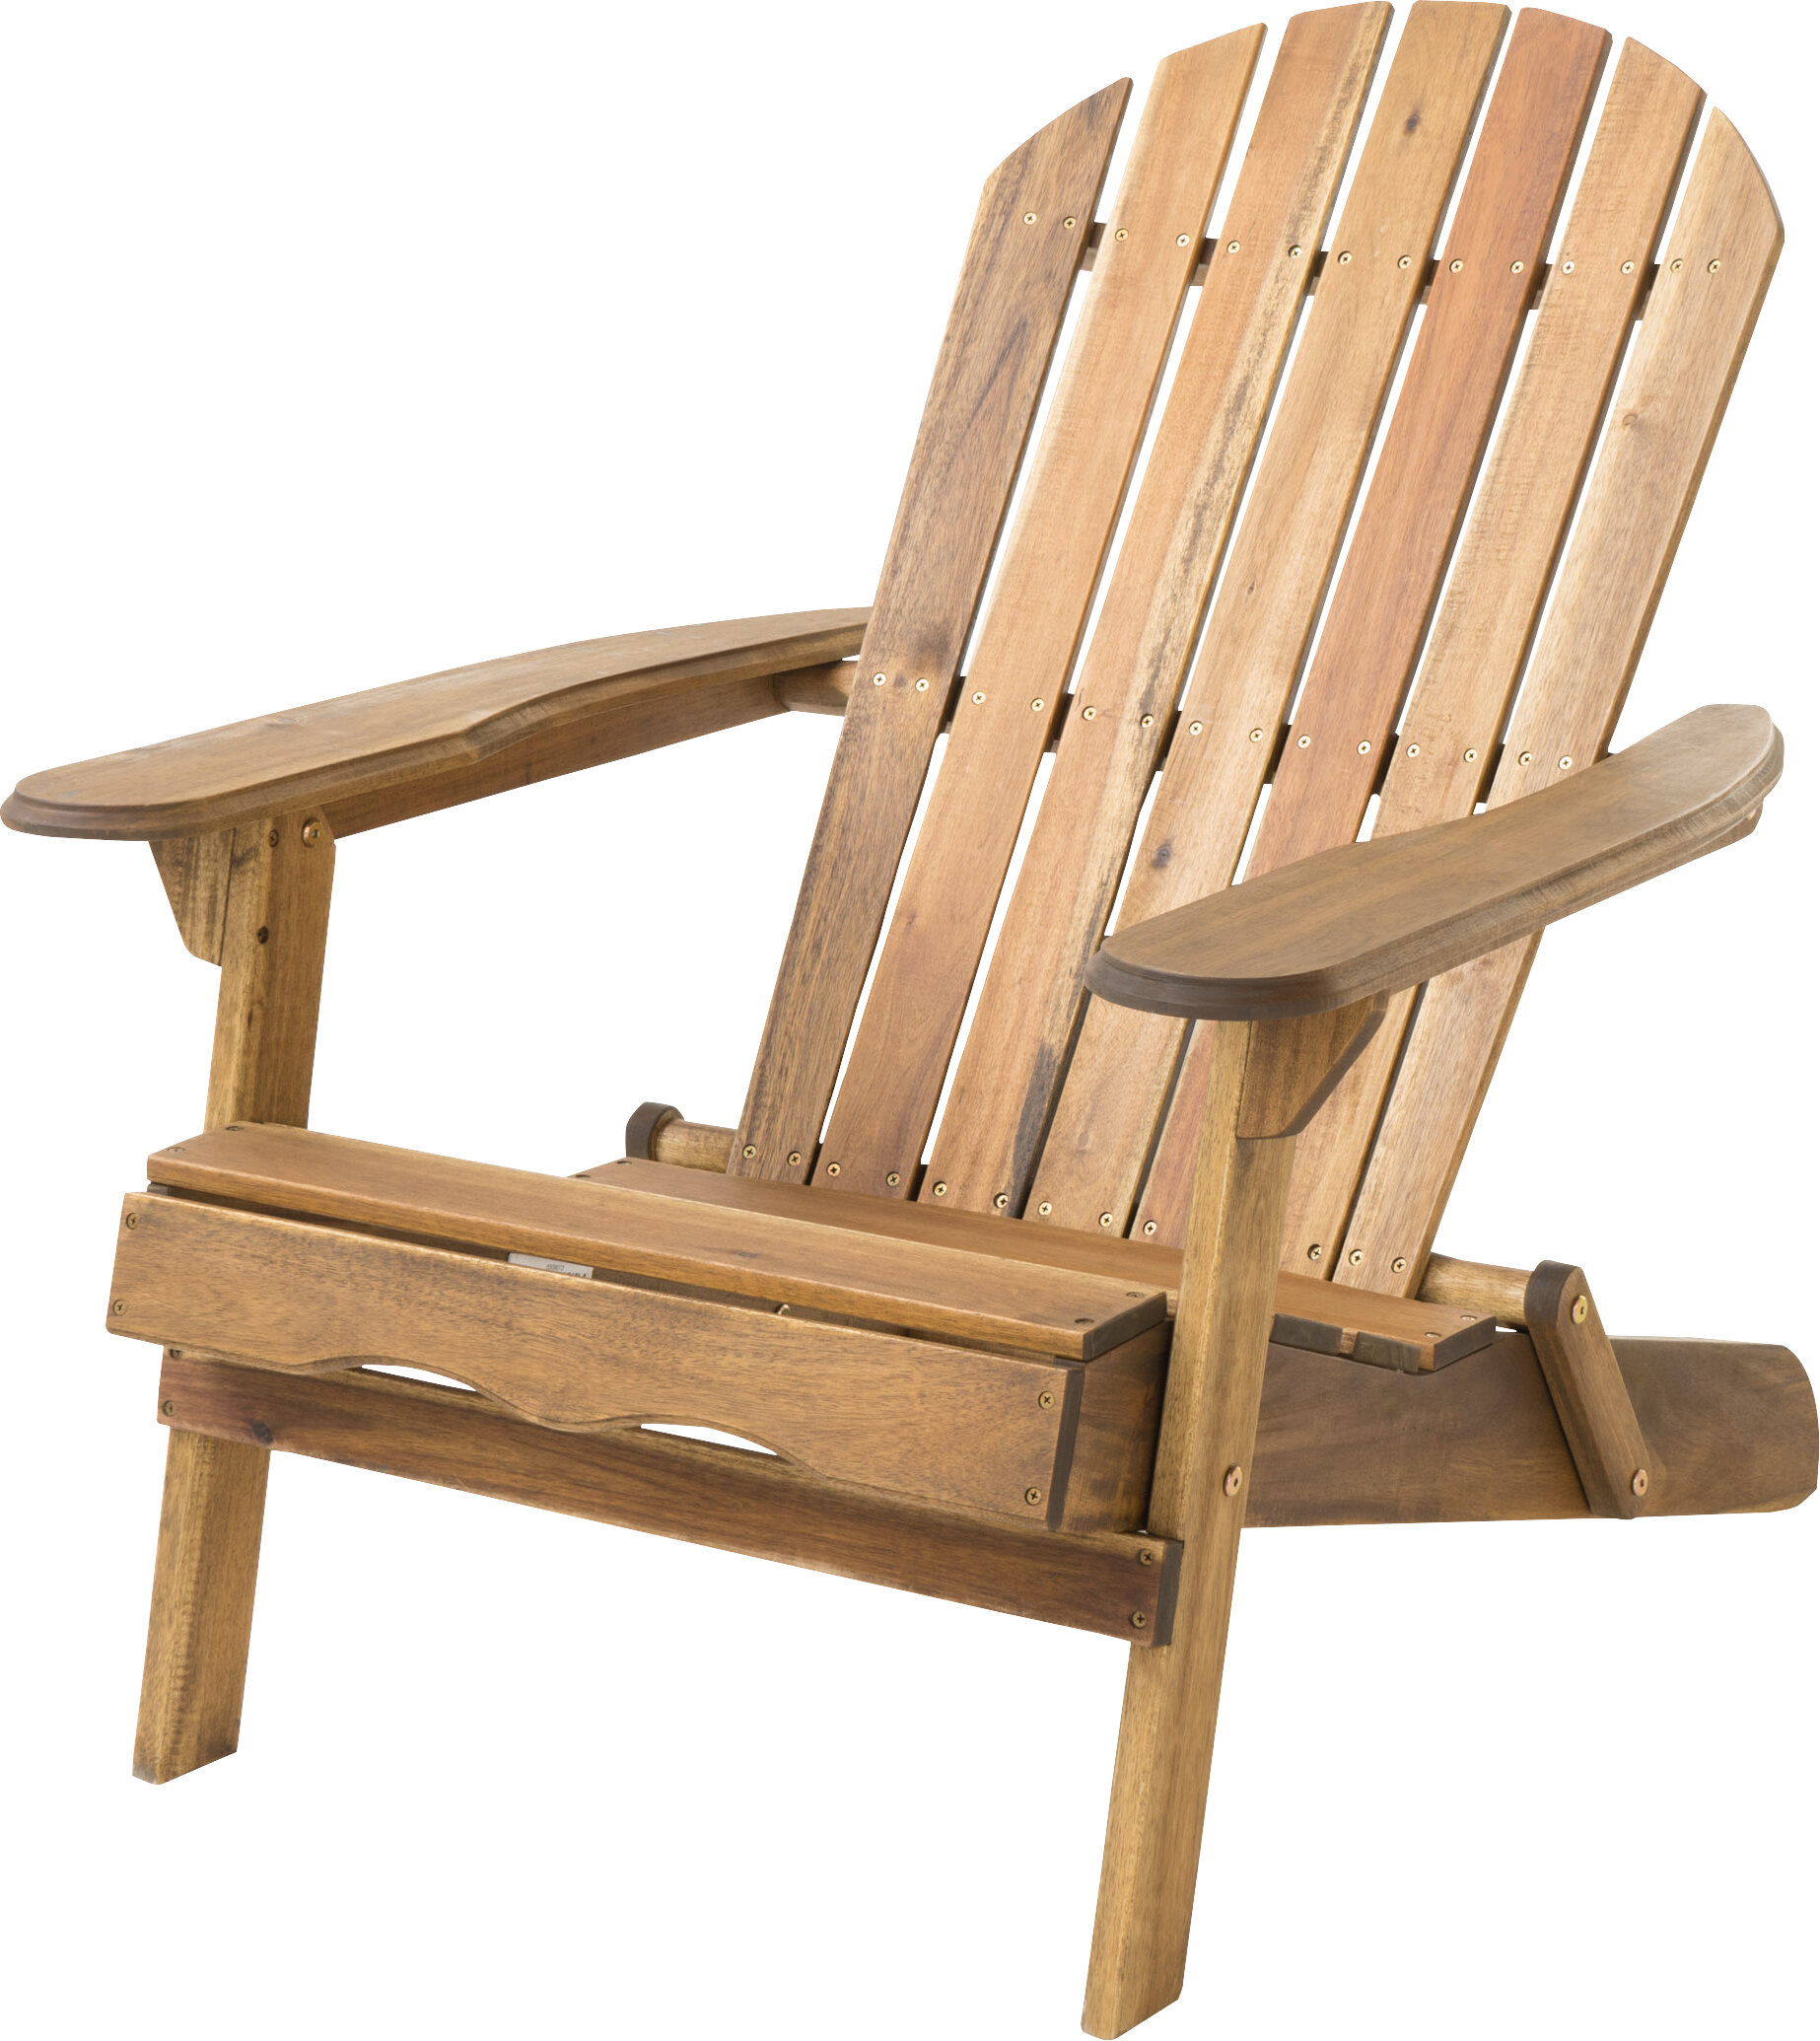 Terrific Ridgeline Solid Wood Folding Adirondack Chair Caraccident5 Cool Chair Designs And Ideas Caraccident5Info